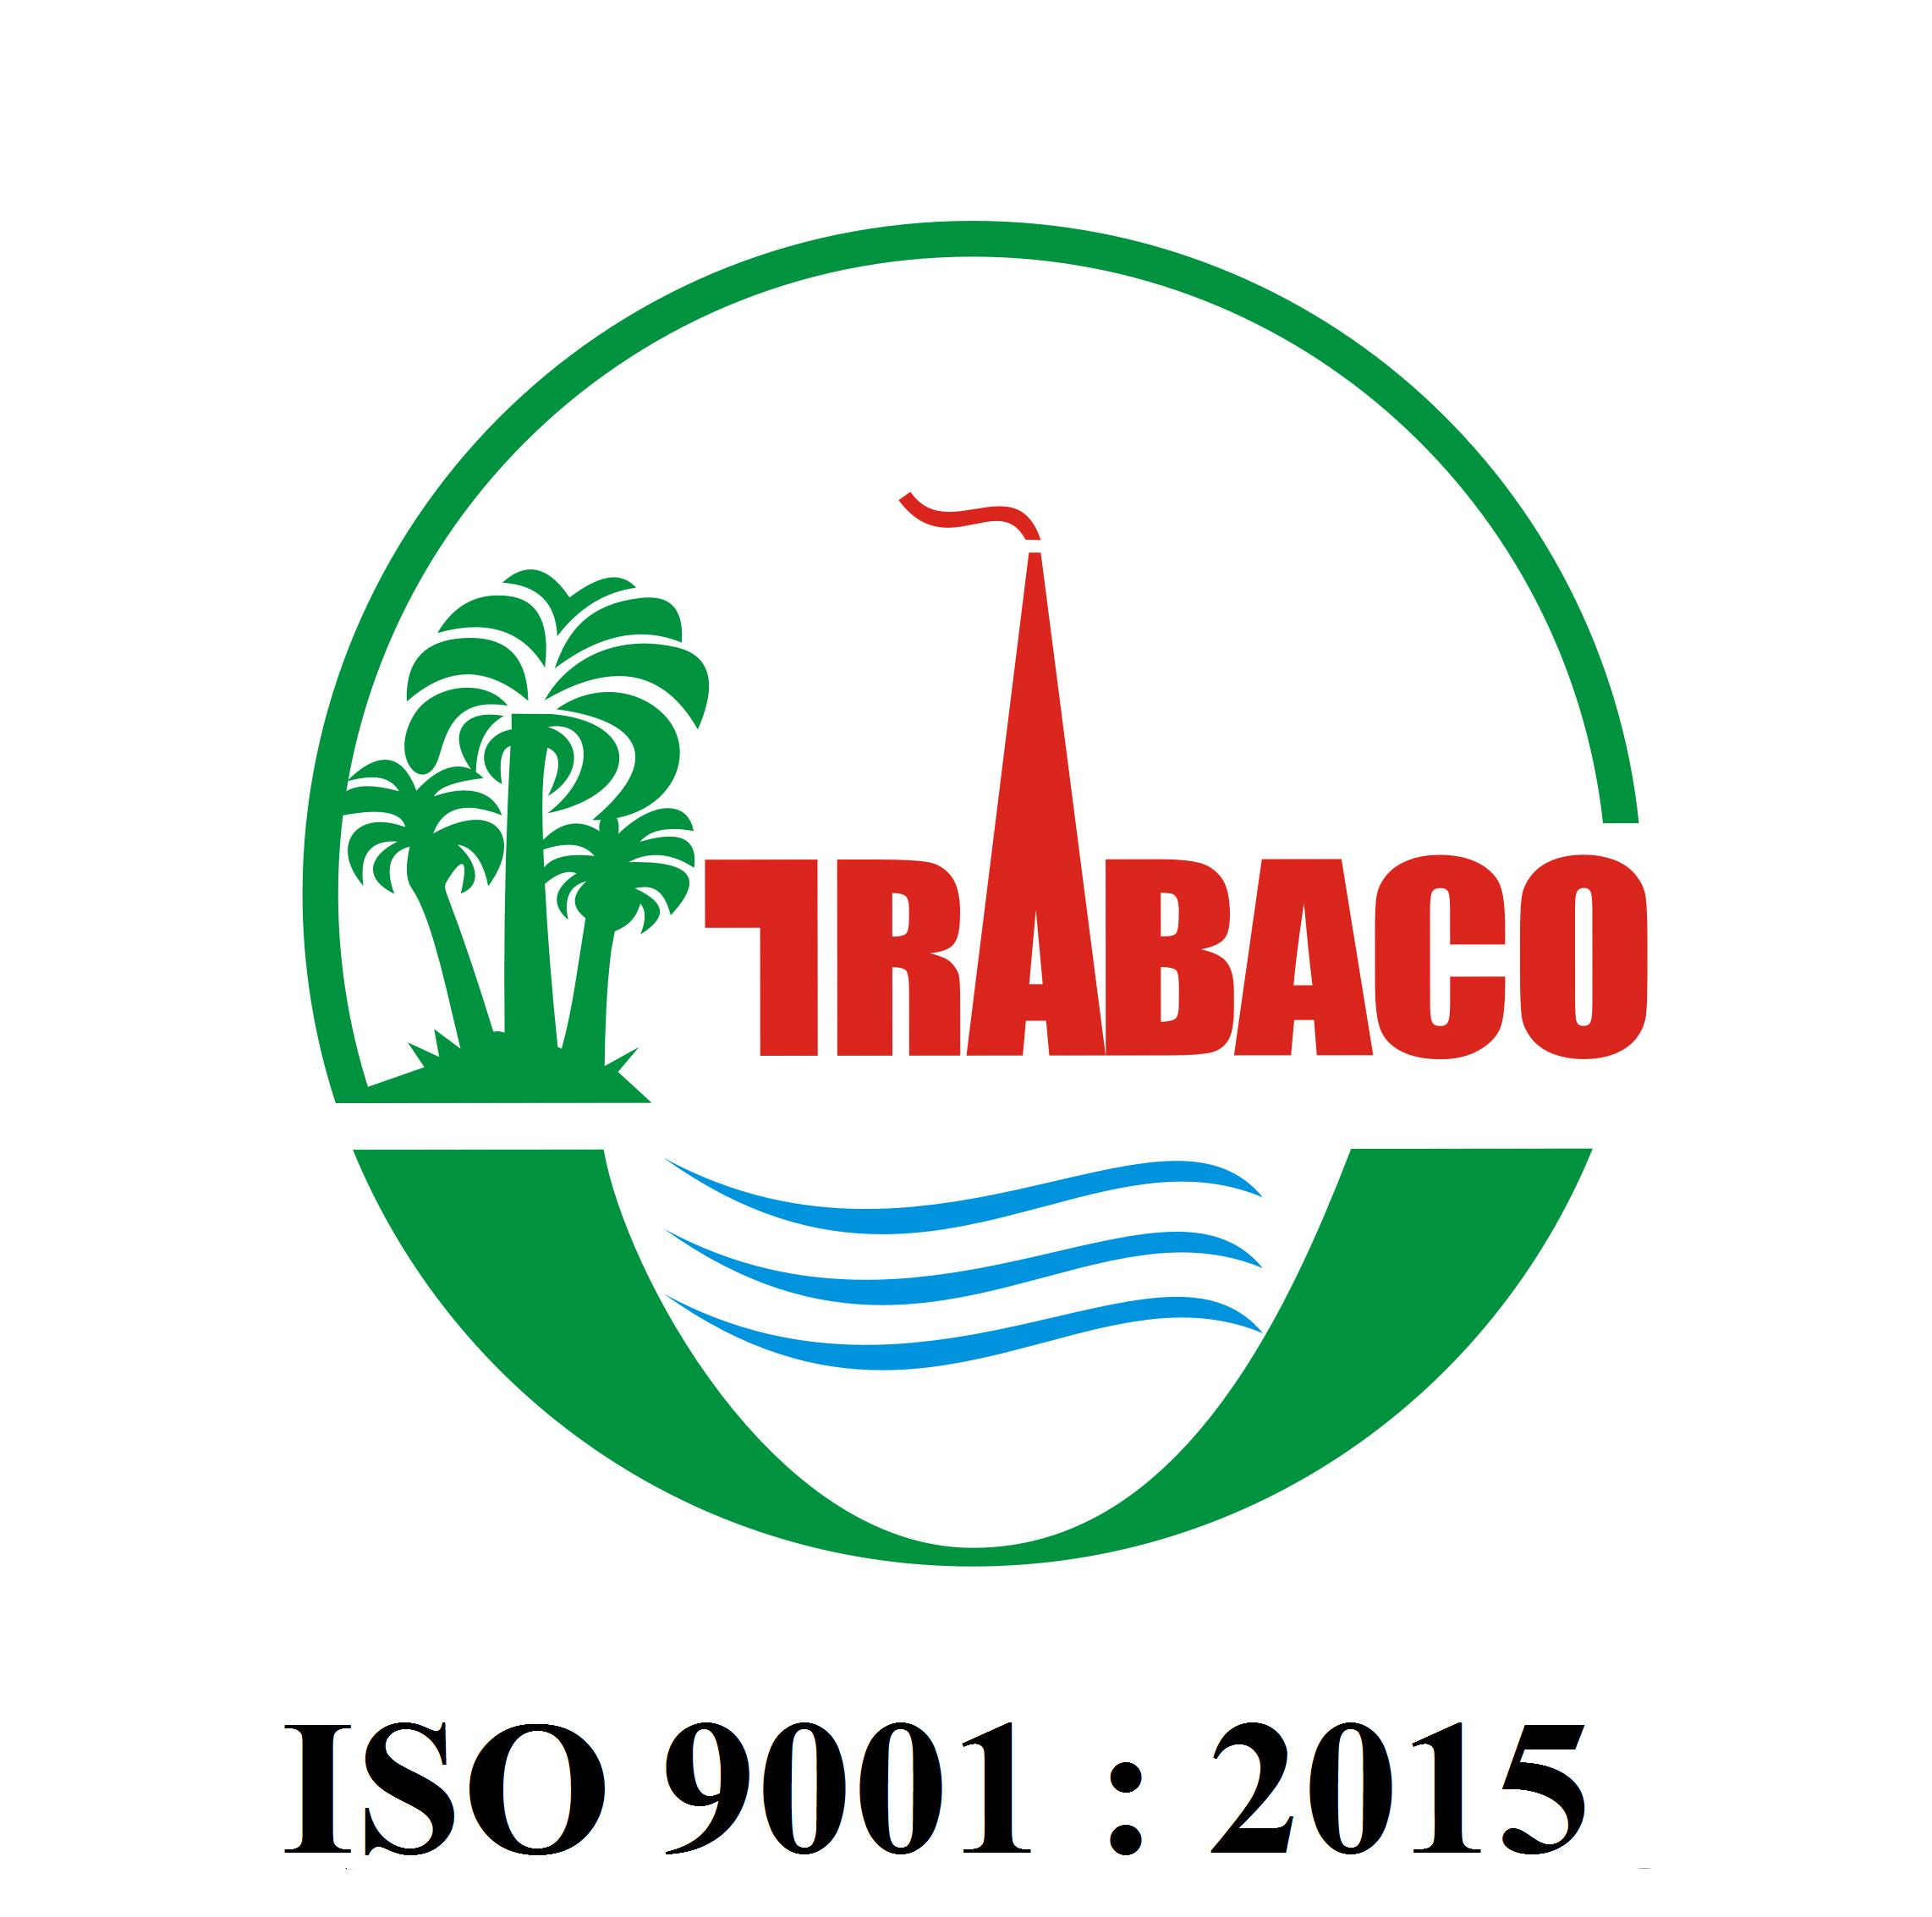 TRABAC JOINT STOCK CORPORATION